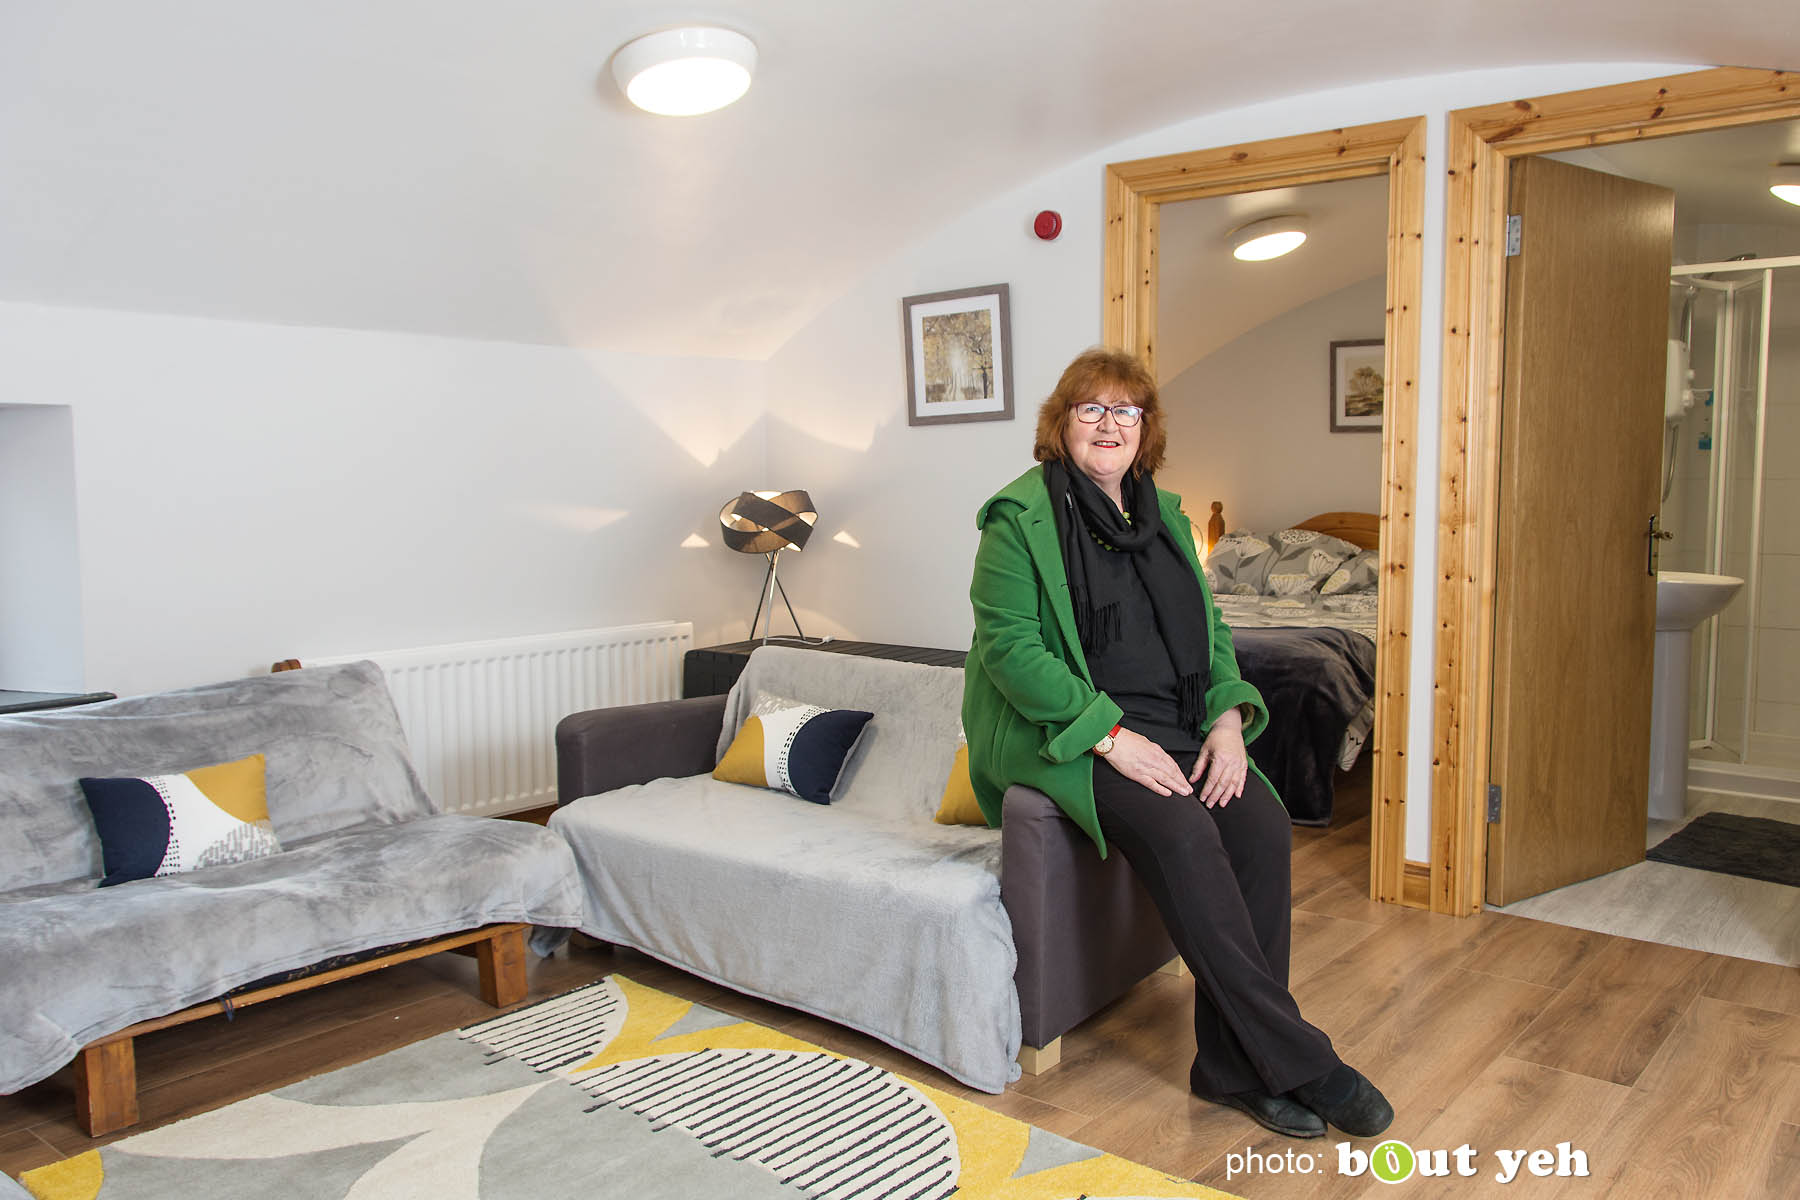 Liz Weir, Ballyeamon Barn Hostel, Glenariff, Northern Ireland - photo 1038.